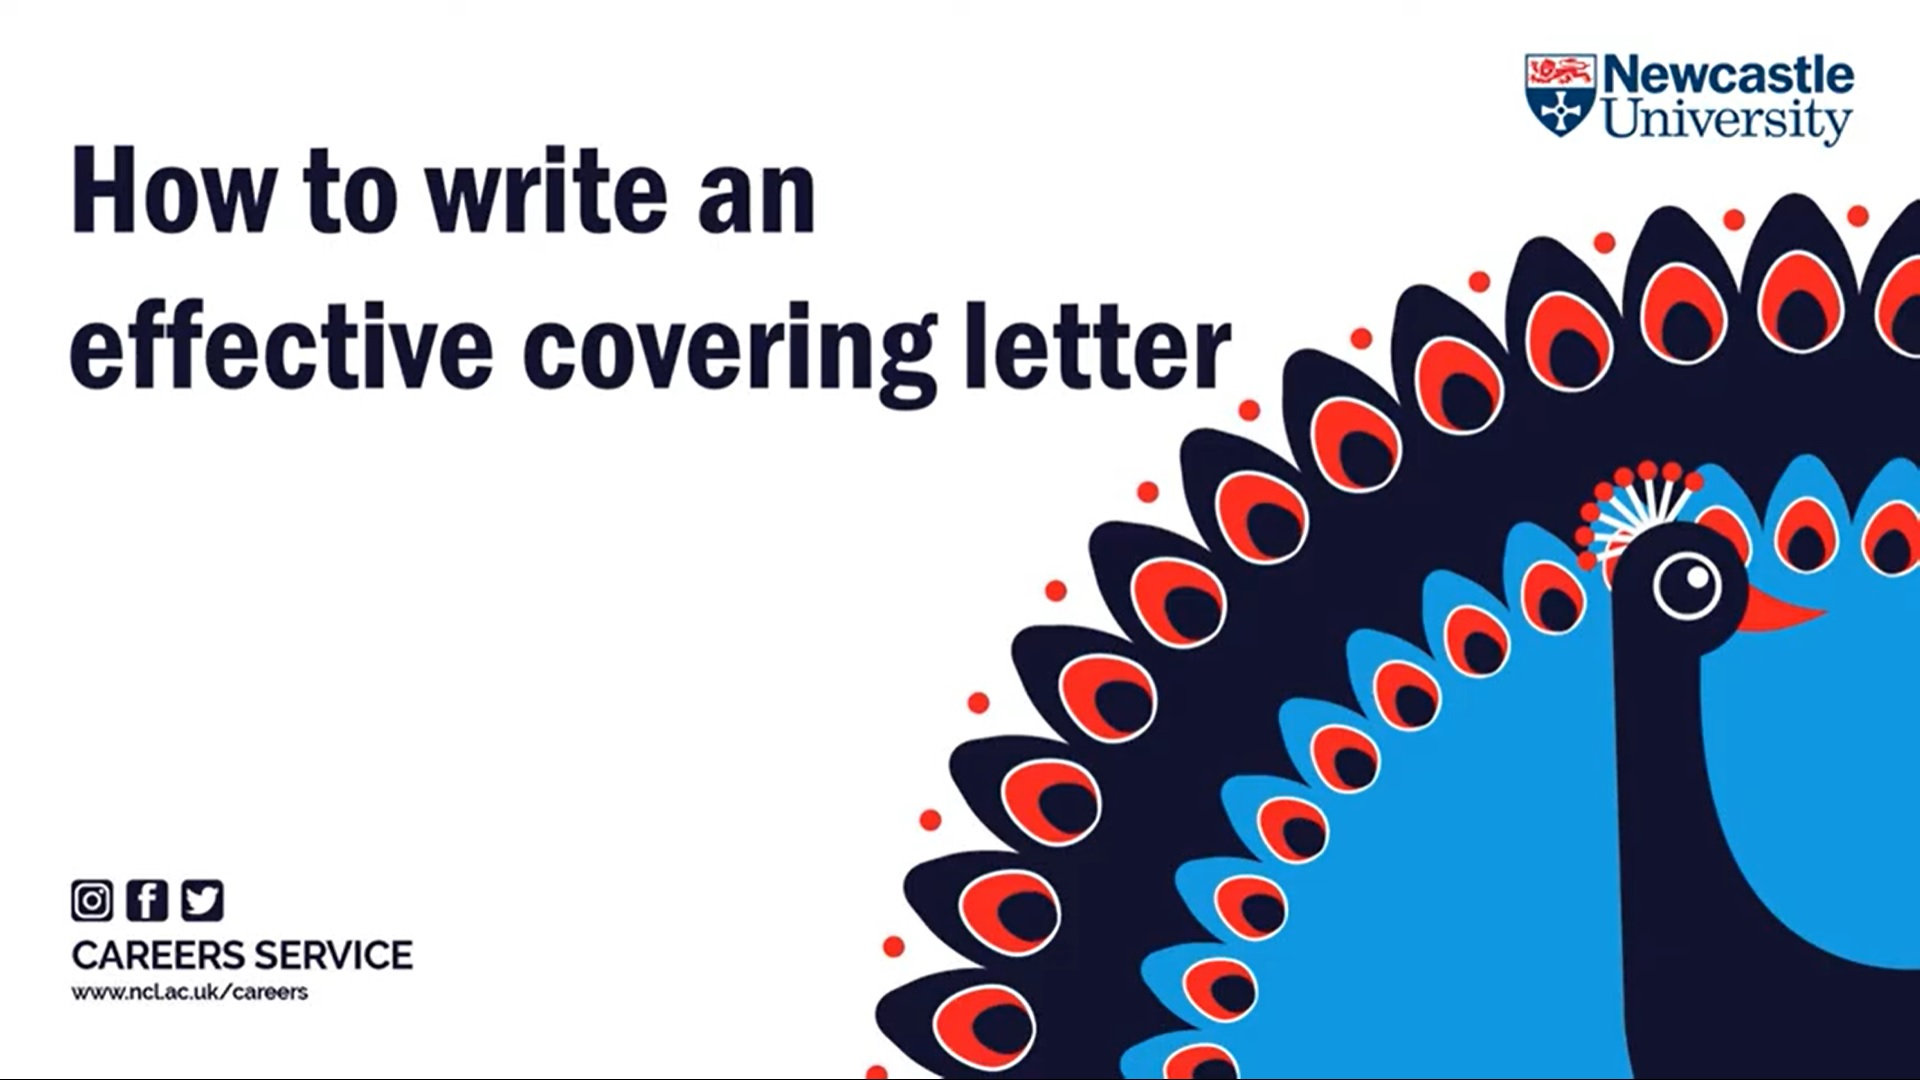 Title slide from our how to write an effective covering letter presentation